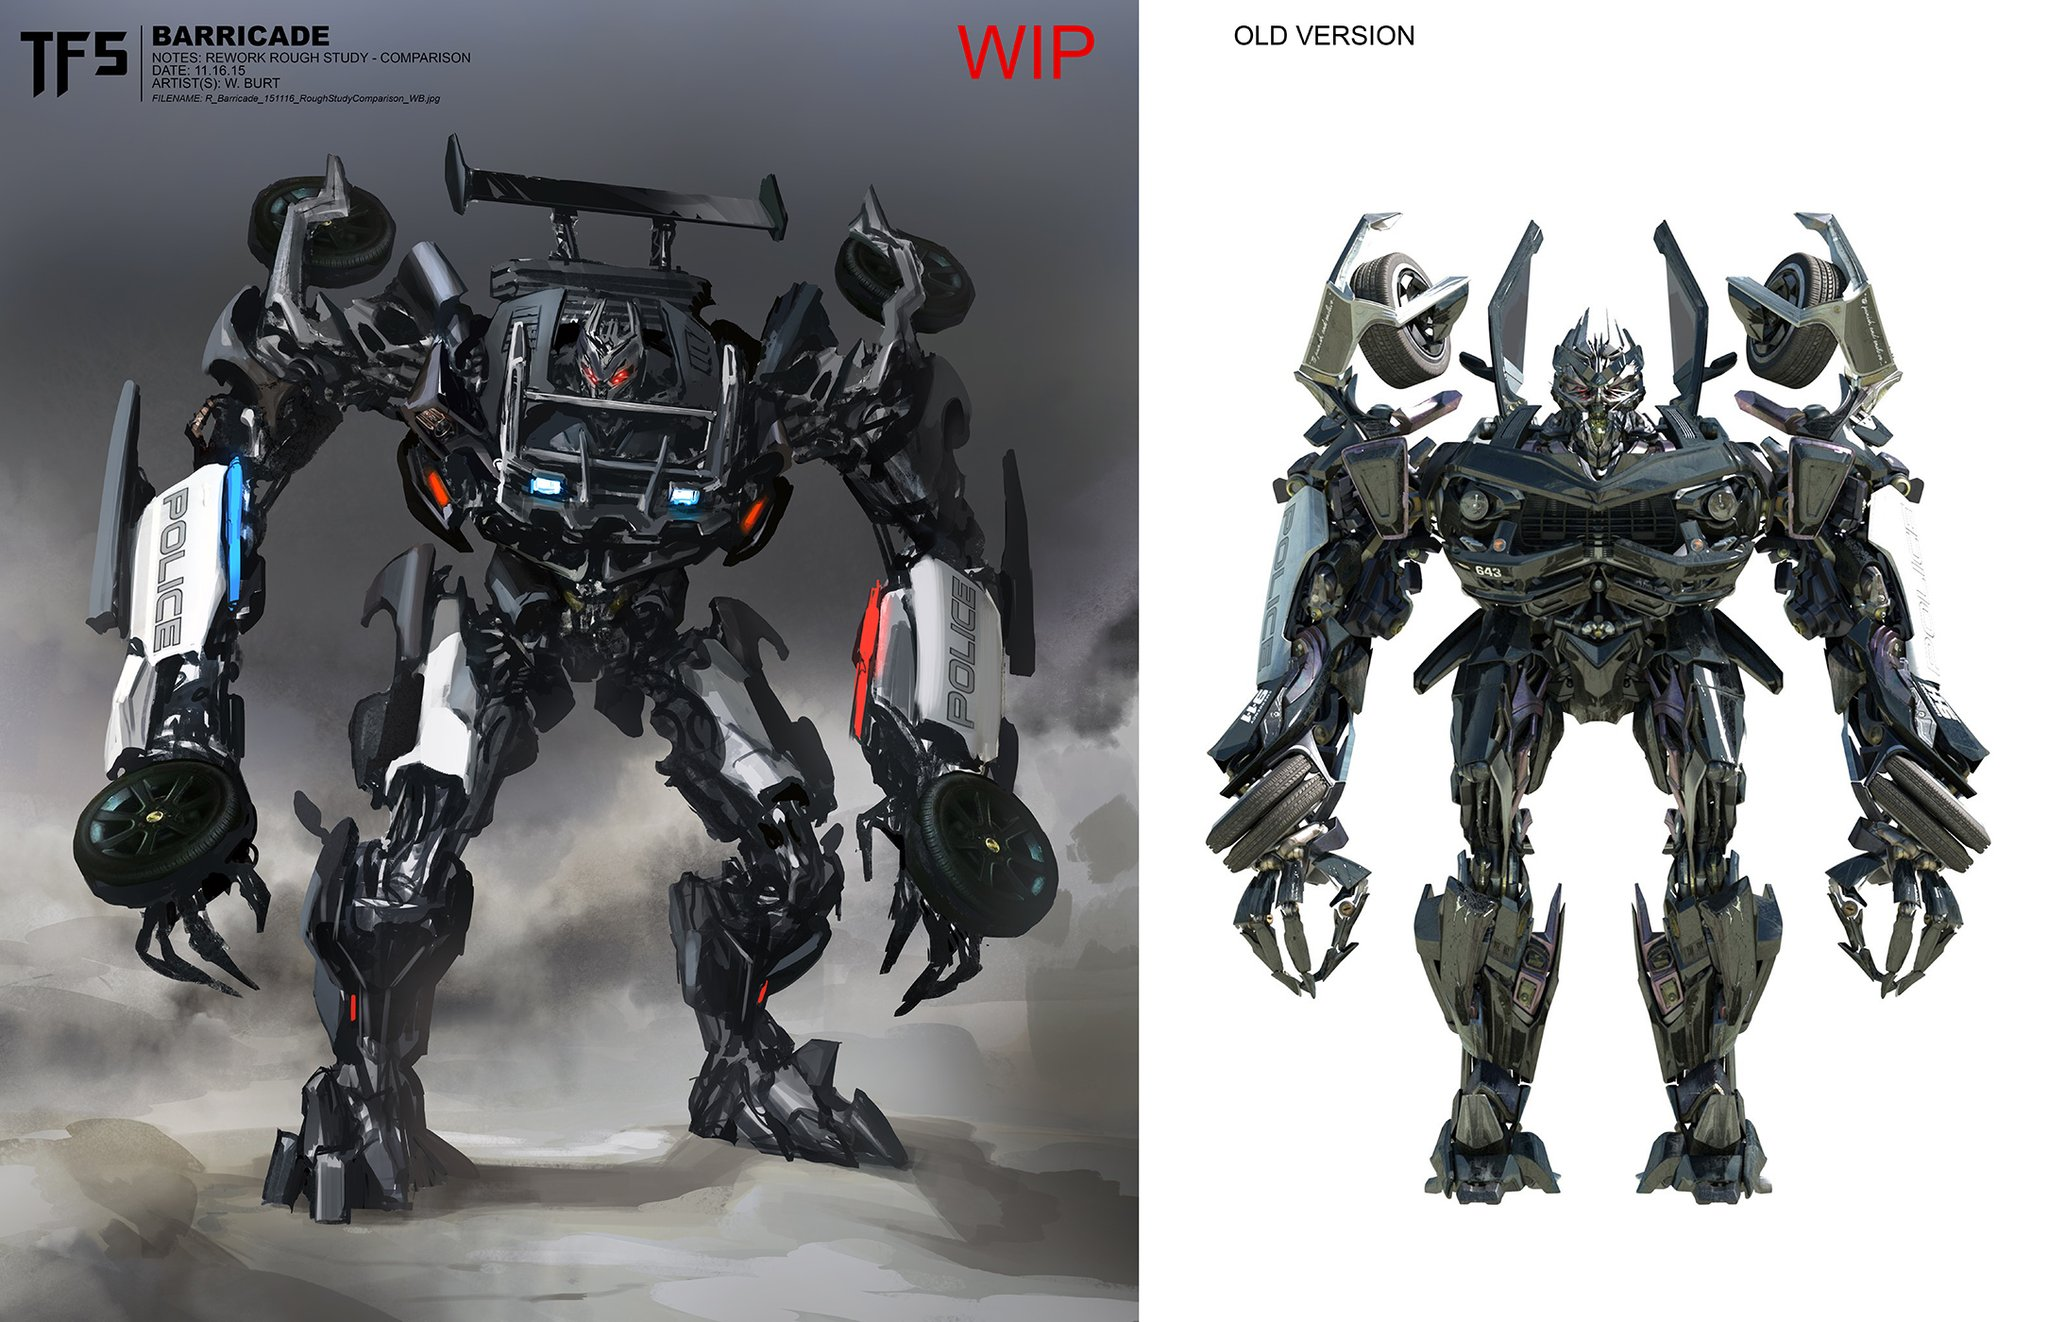 Car Trader Online >> Transformers The Last Knight Concept Art: Cybertron, Barricade And Daytrader - Transformers News ...